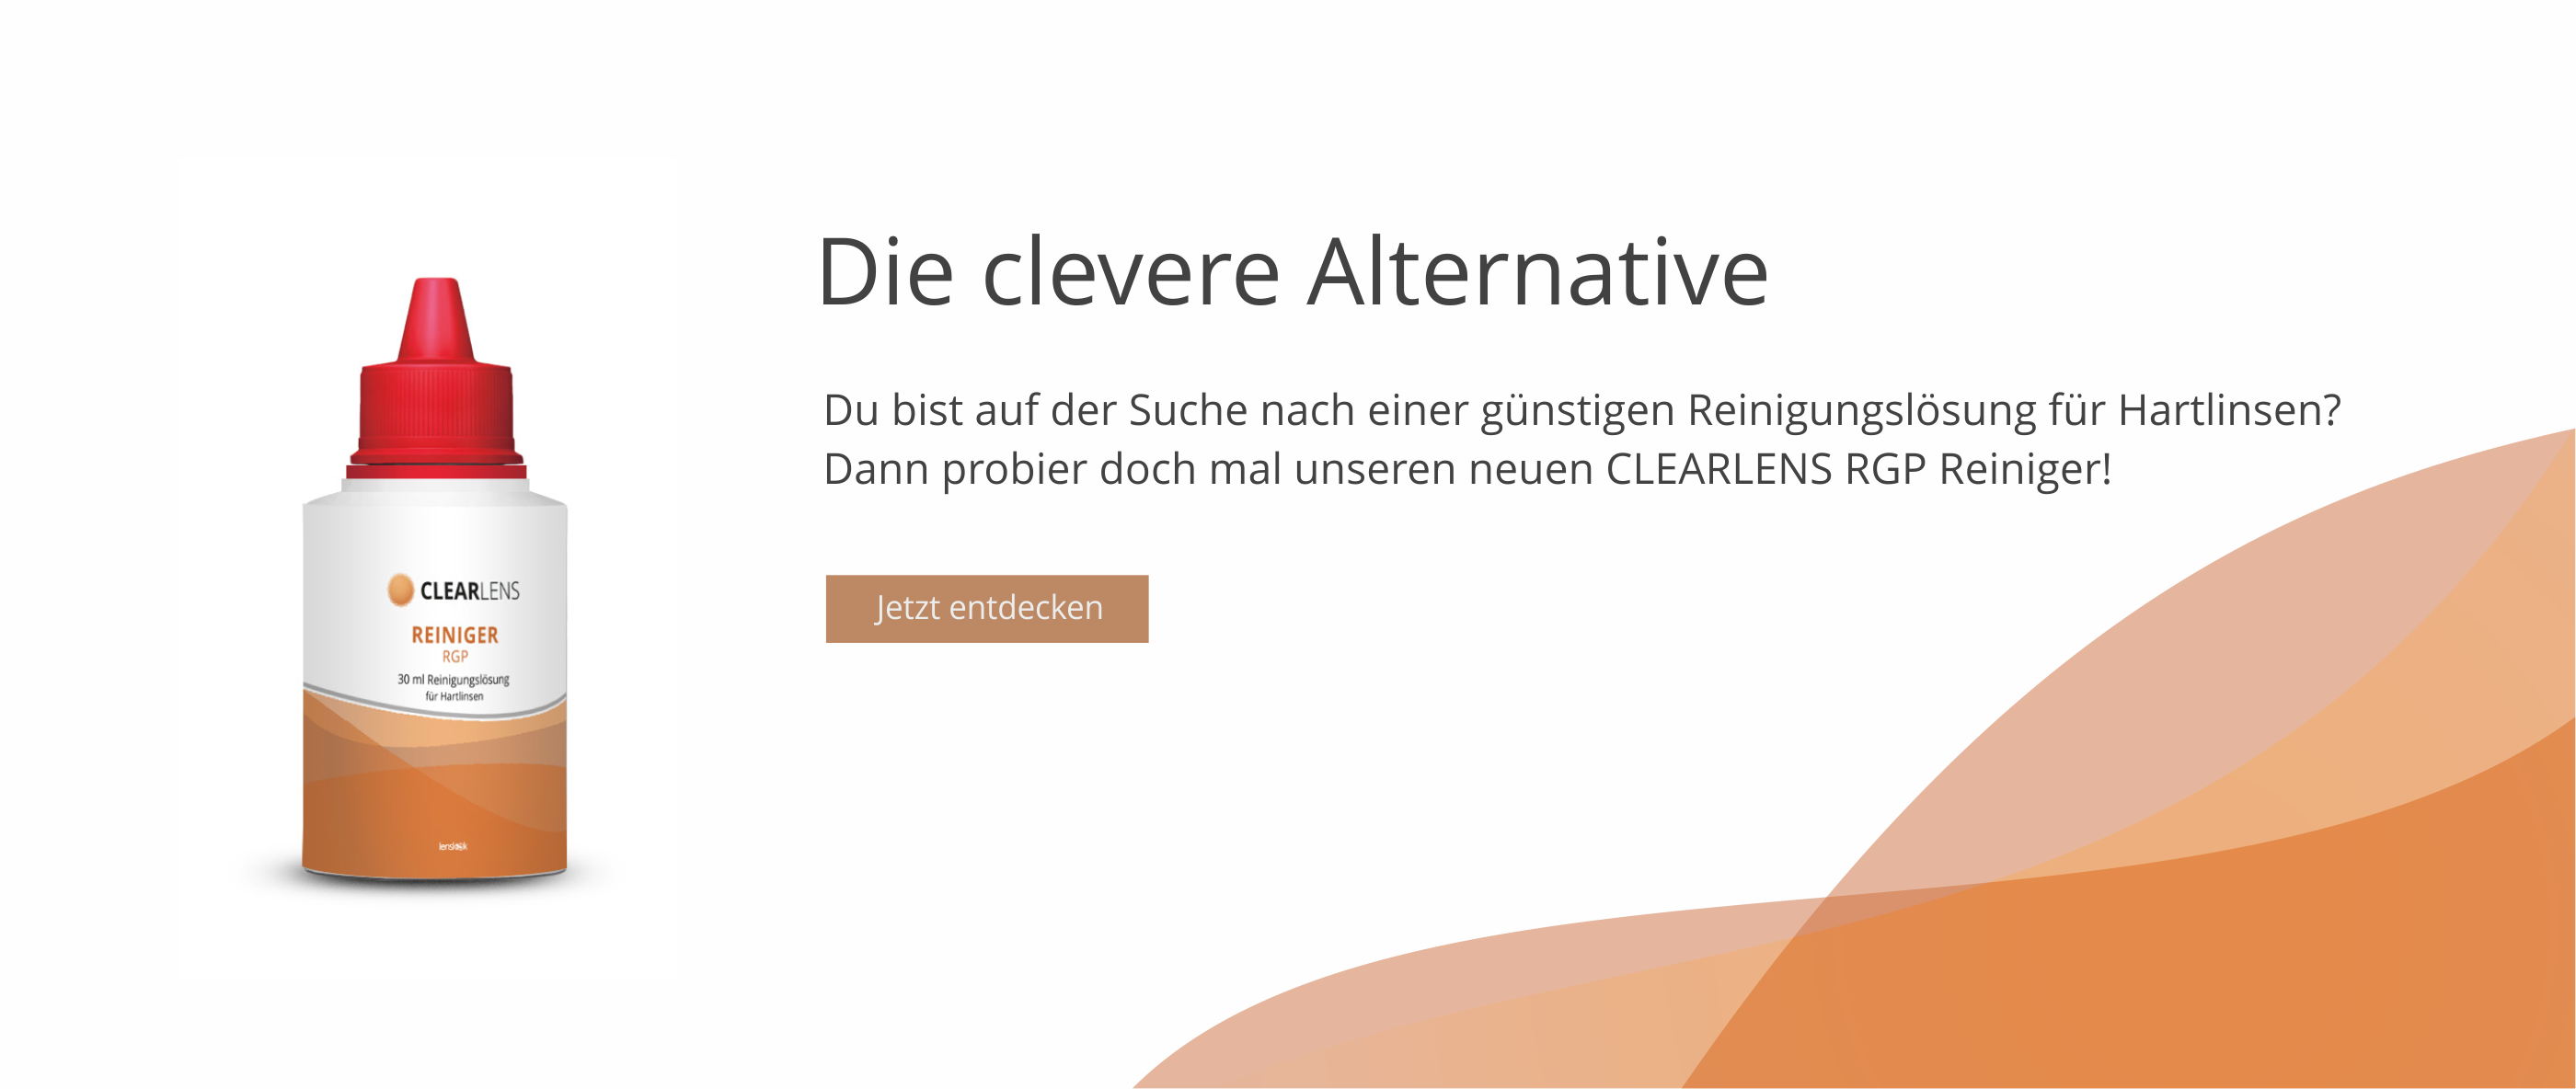 ClearLens_Alternative_RGP_Reiniger_30ml